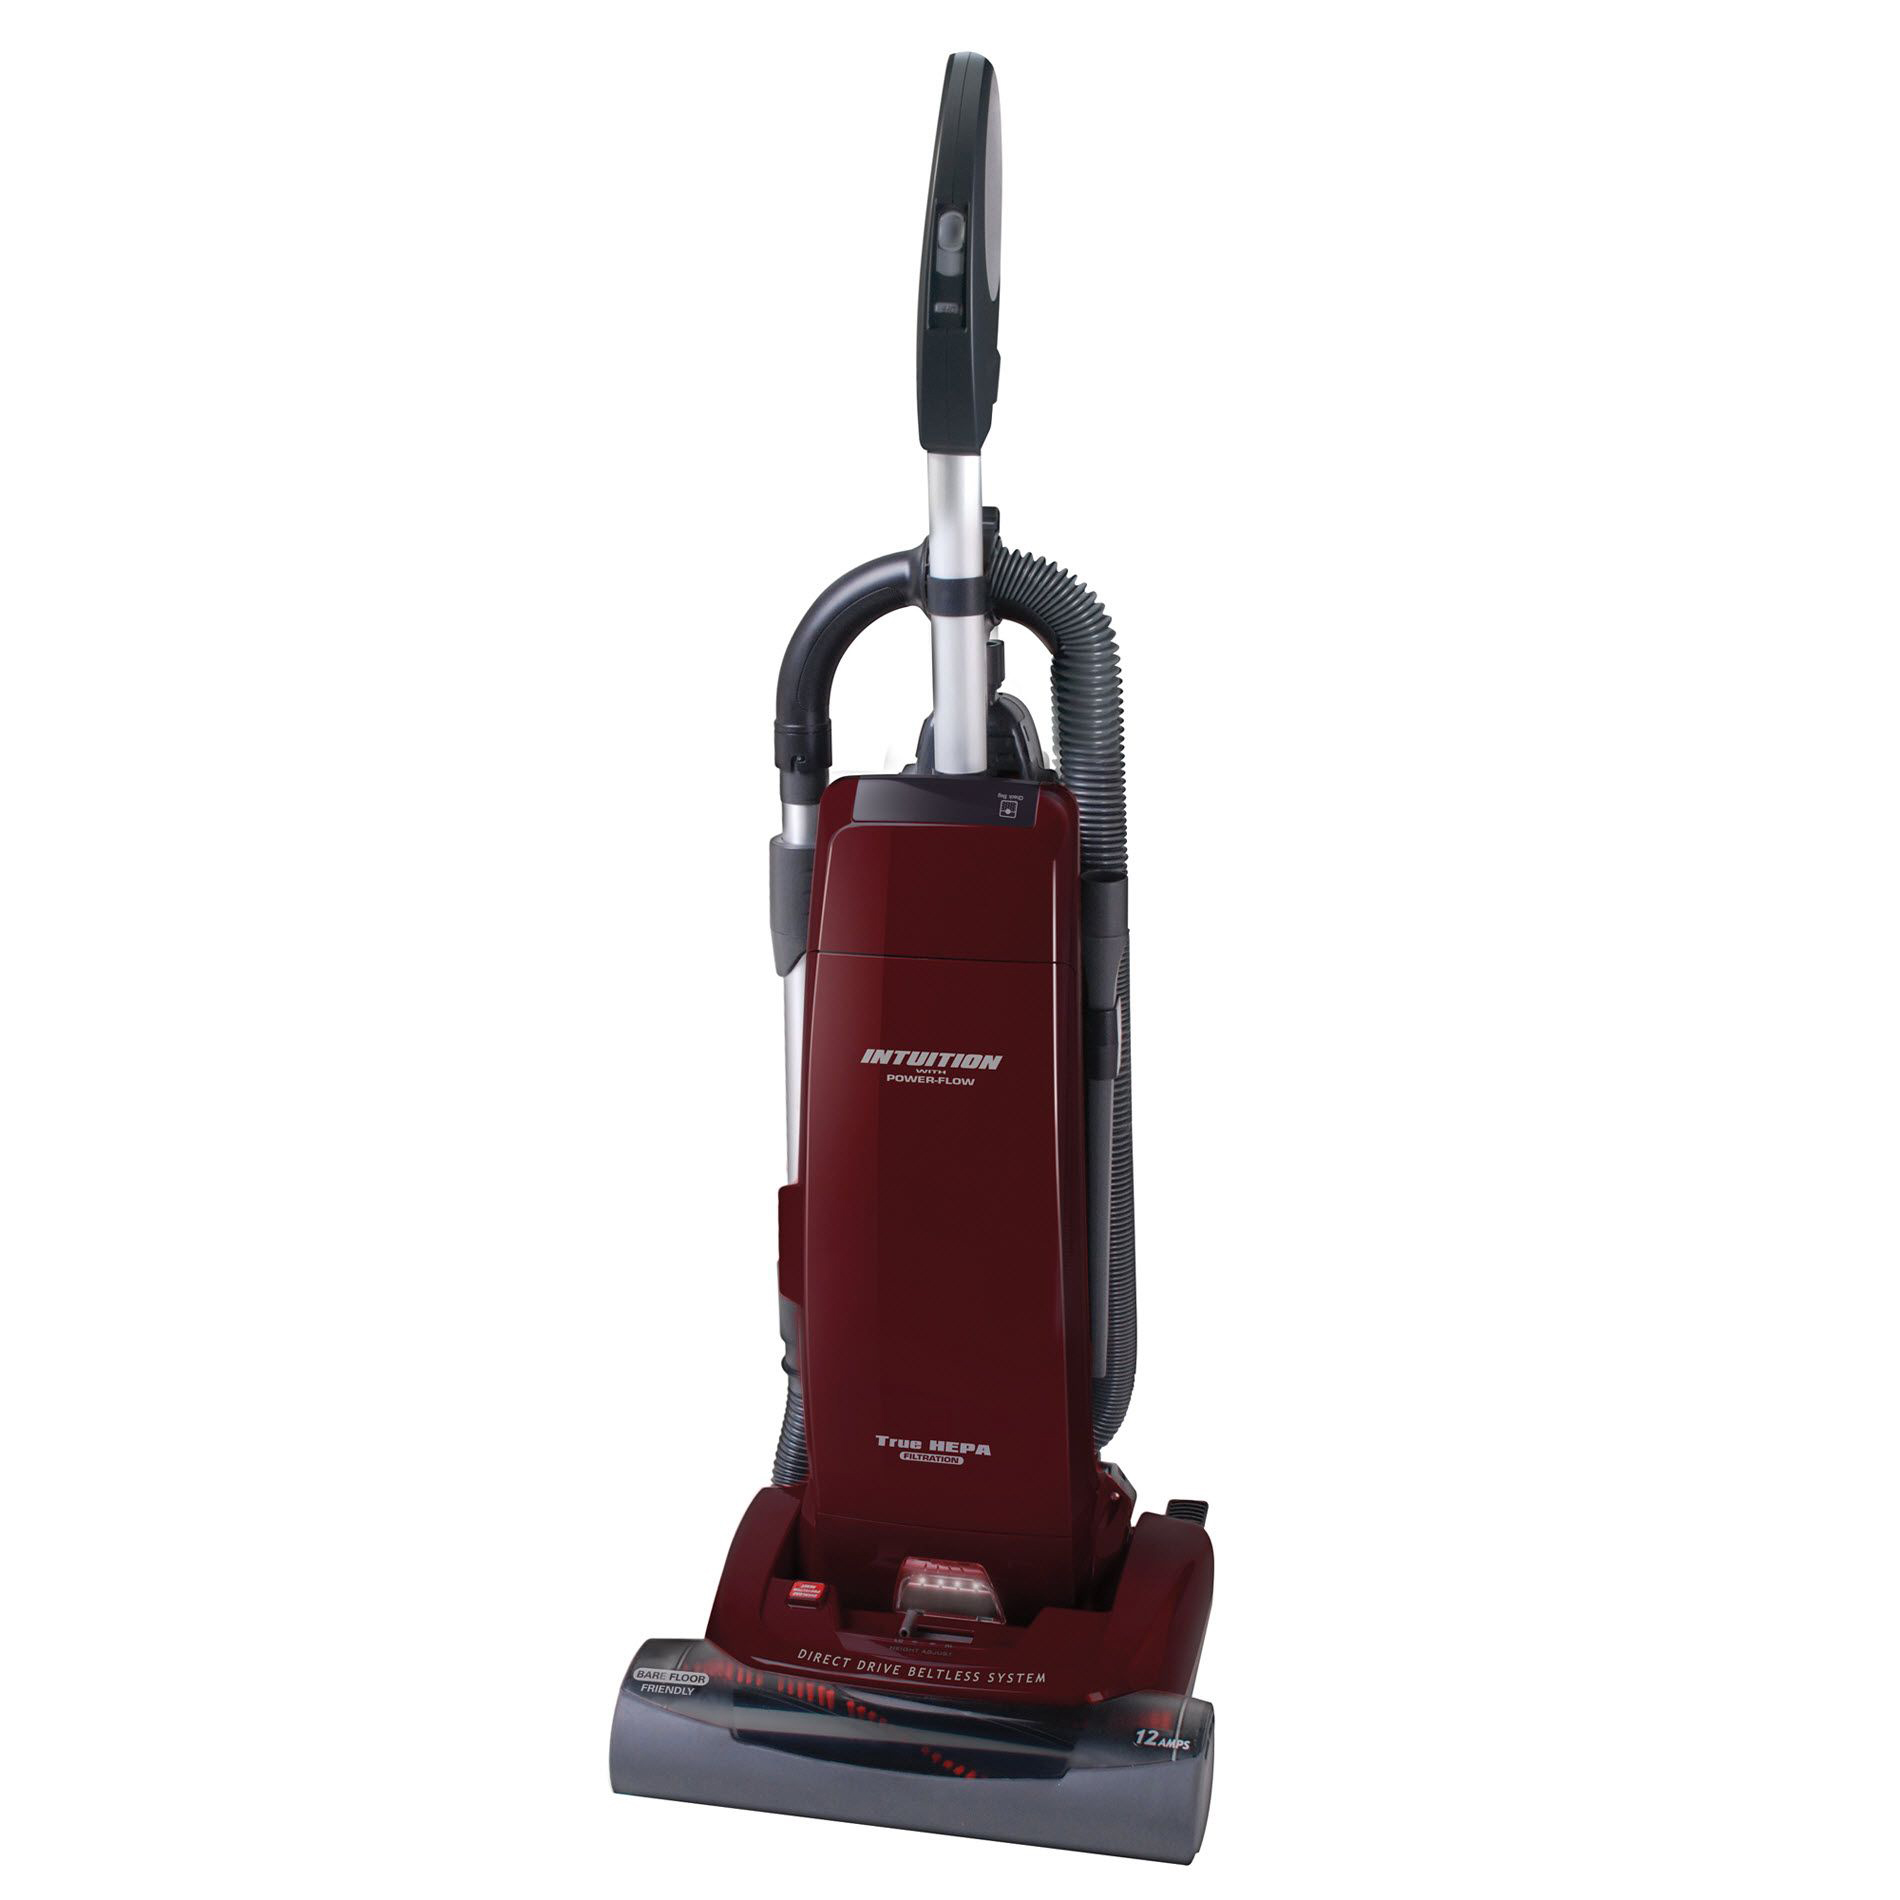 hight resolution of sears vacuum cleaner wiring diagram wiring diagram centre looking for kenmore model 11631100901 upright vacuum repairsears